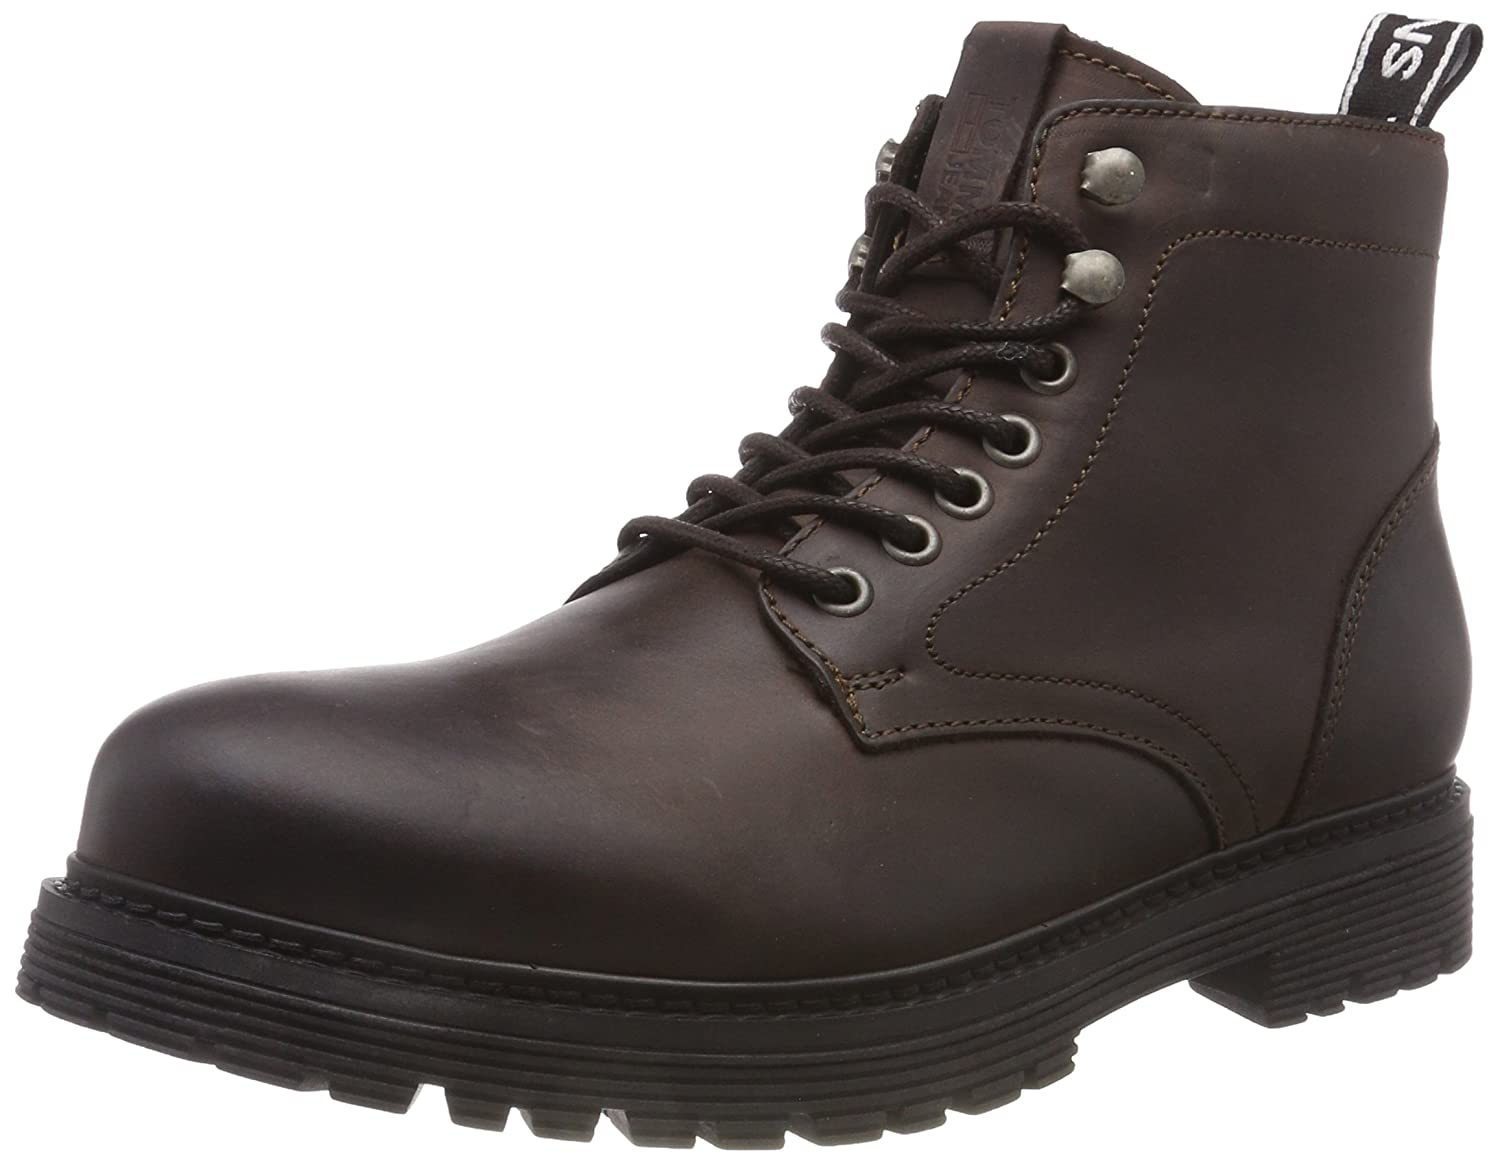 TALLA 41 EU. Tommy Jeans Outdoor Lace Up Boot, Botas Militar para Hombre